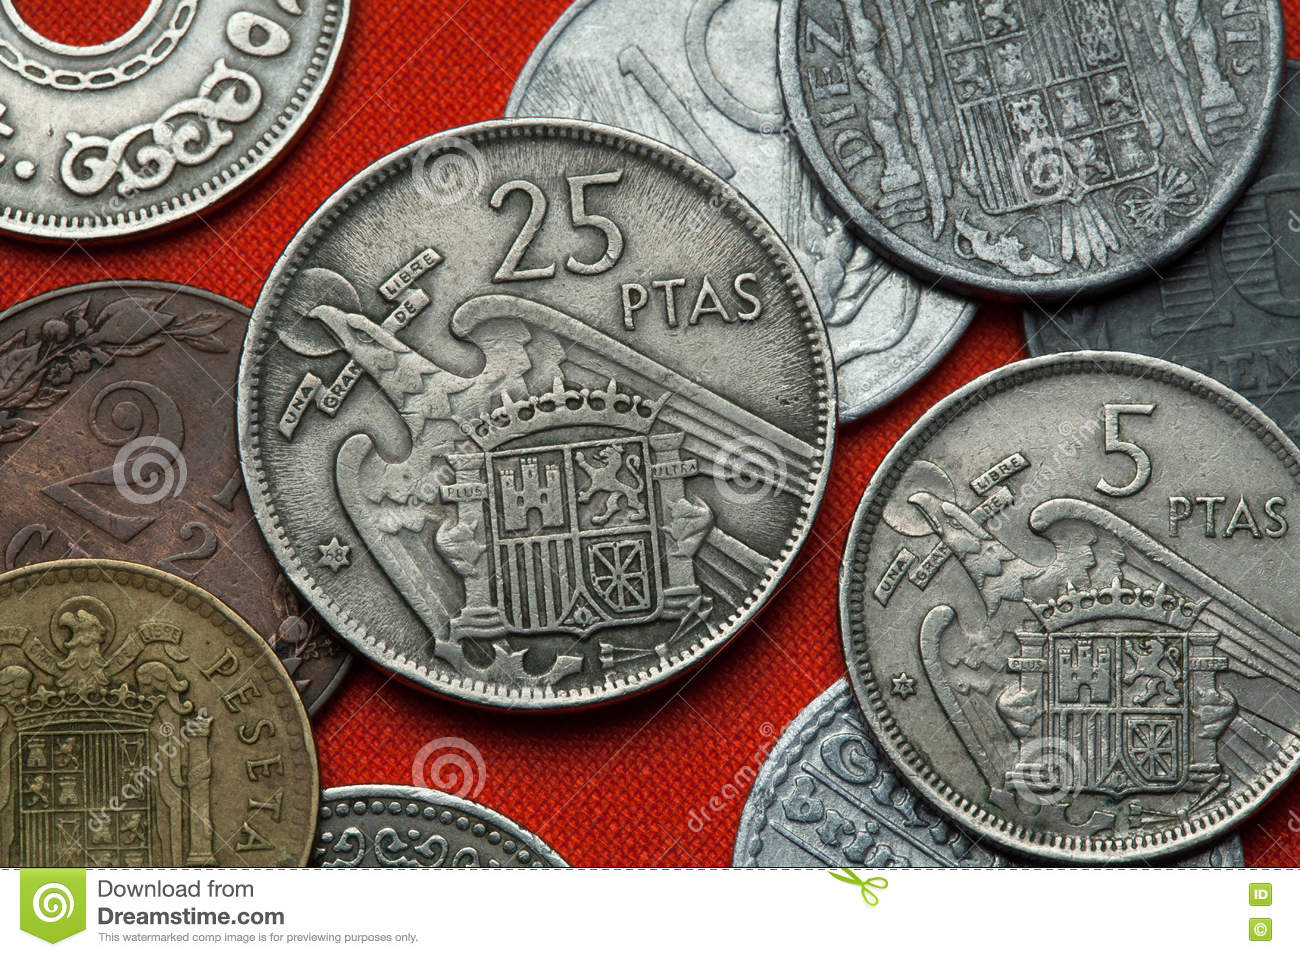 Coins of Spain under Franco